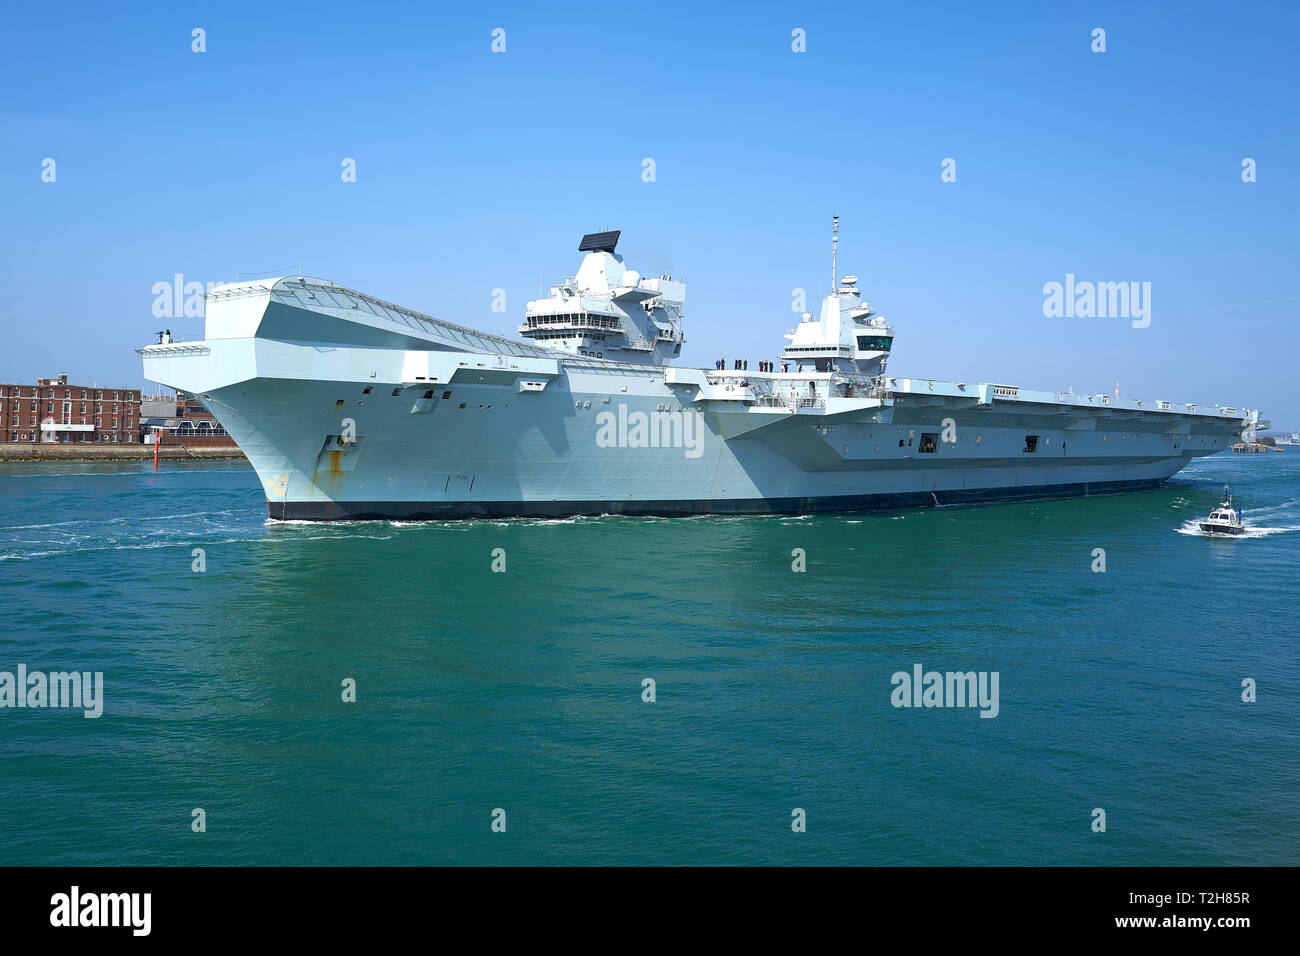 The Royal Navy Aircraft Carrier, HMS QUEEN ELIZABETH, Leaves Portsmouth Harbour For Rosyth, Scotland. 01 April 2019. - Stock Image